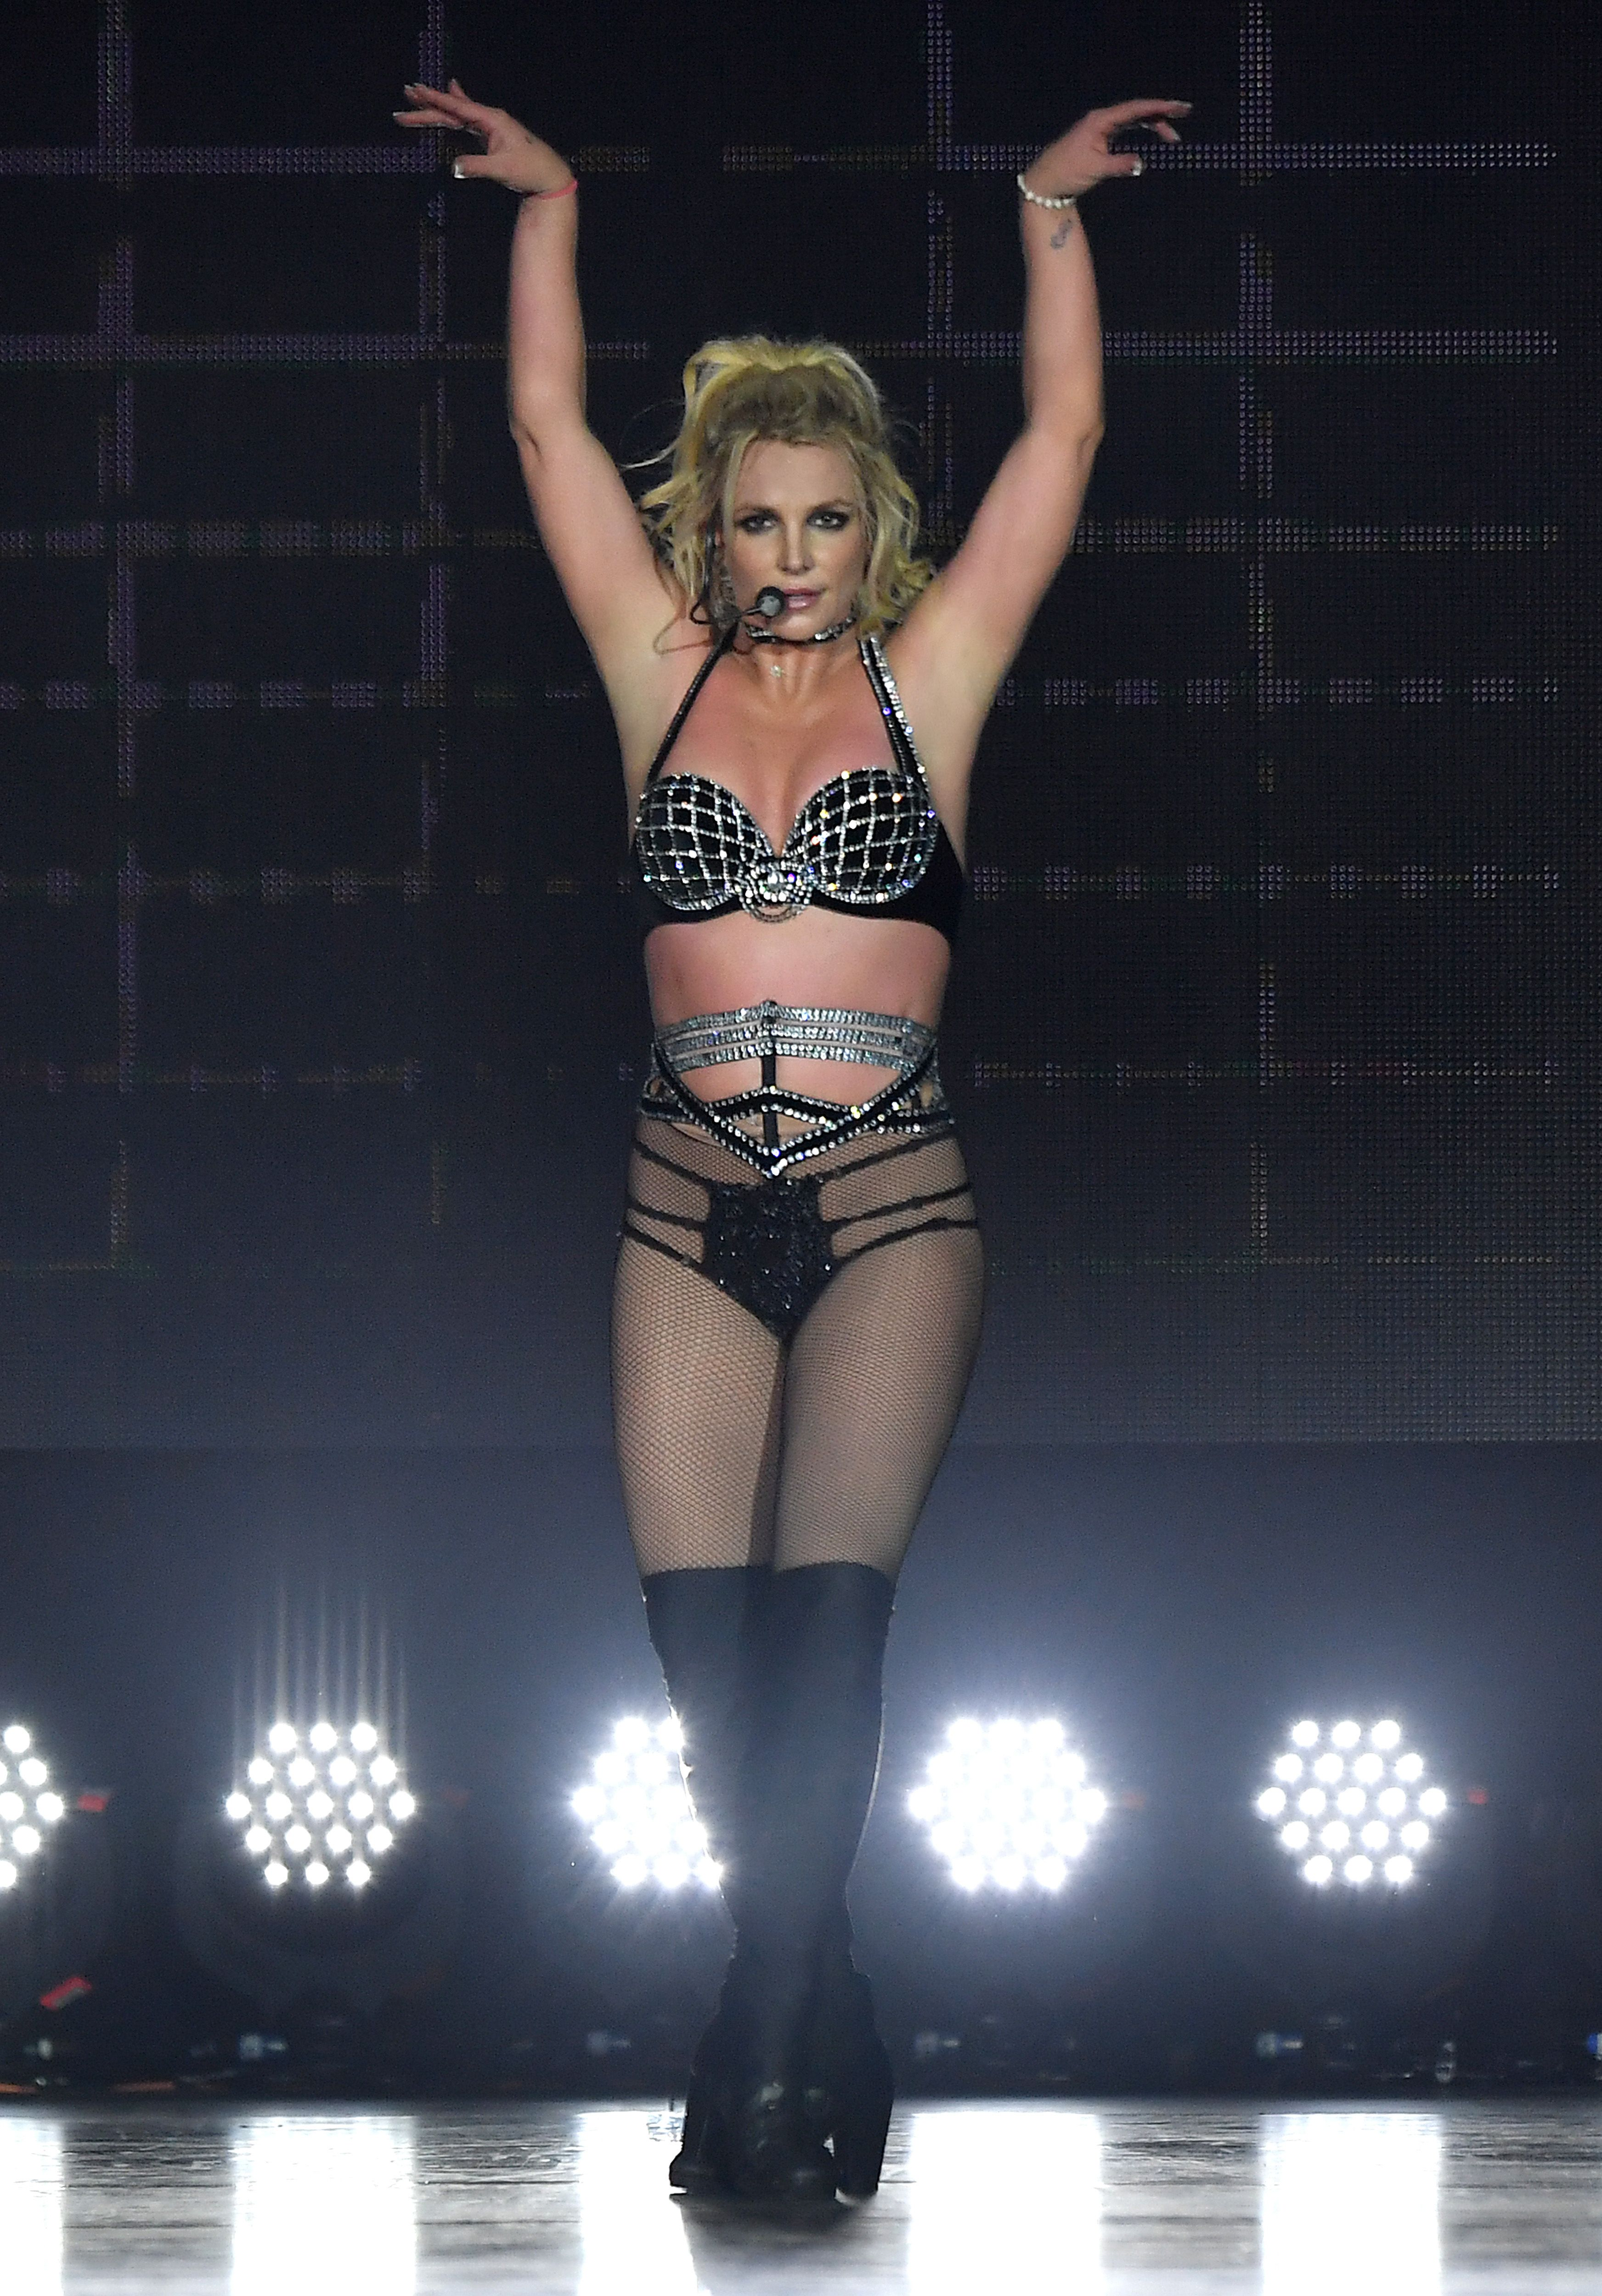 Britney Spears 'Piece Of Me' Summer Tour - London